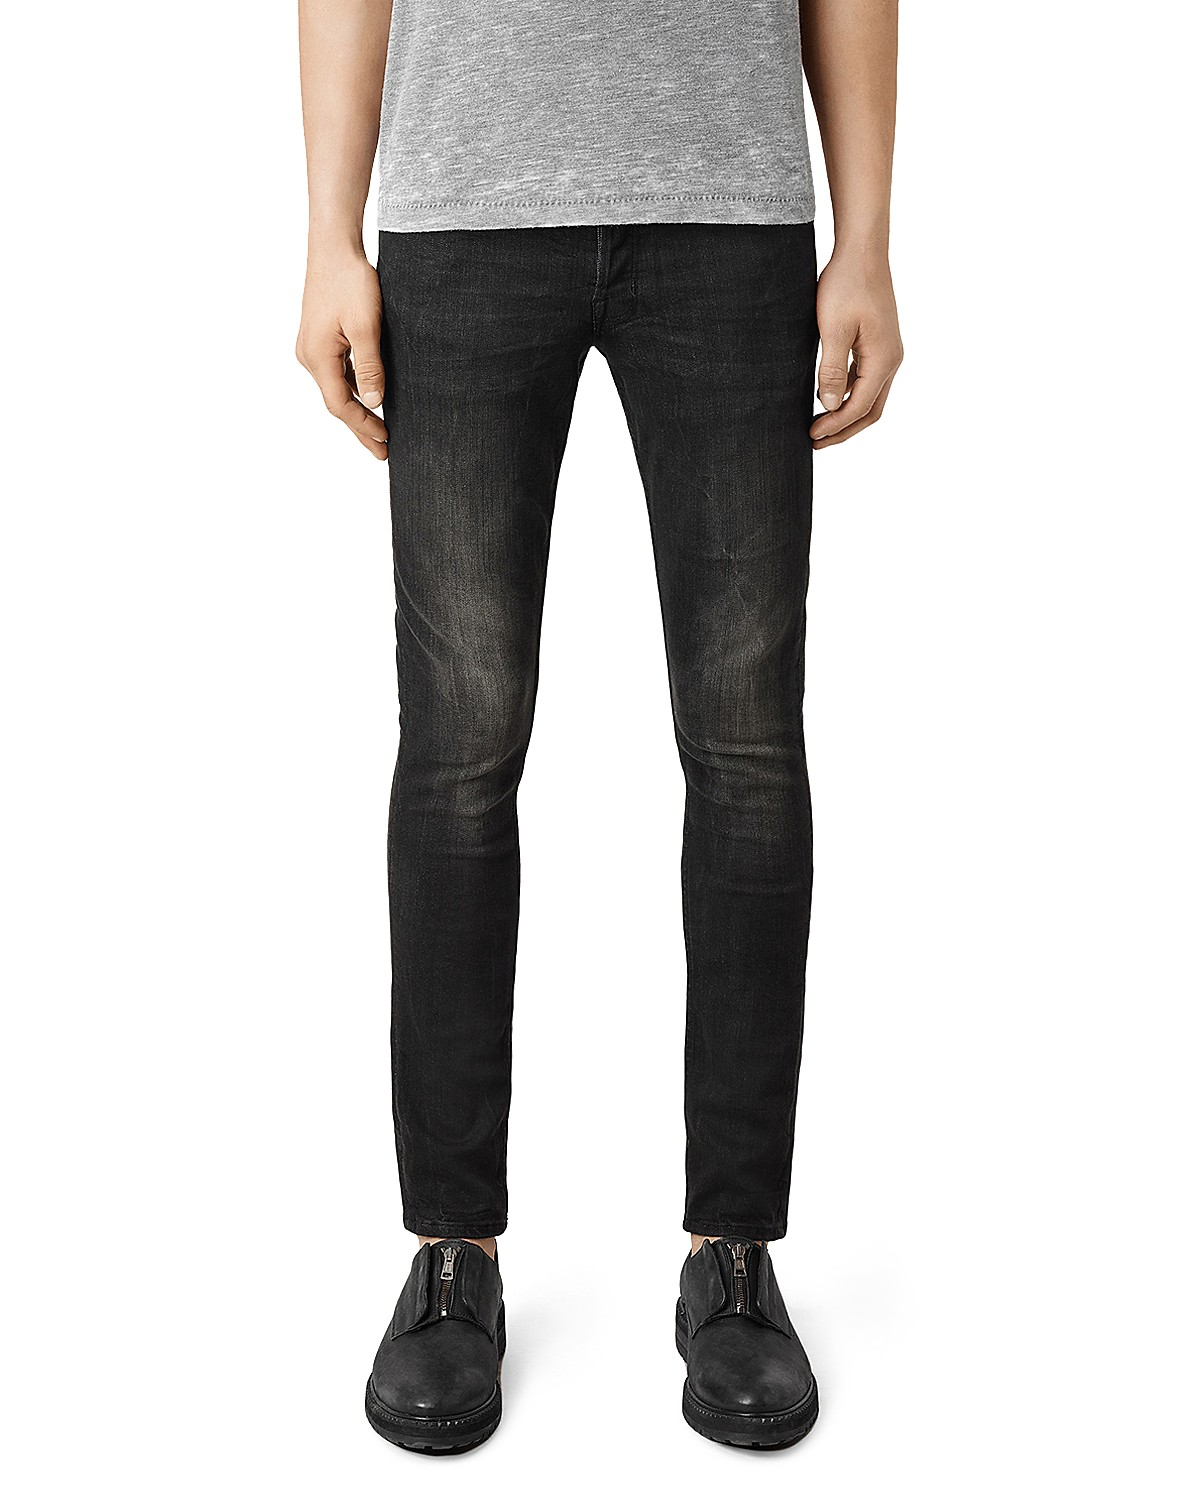 Latest New Allsaints Print Cigarette Jeans Black for Men Sale Online On Sale